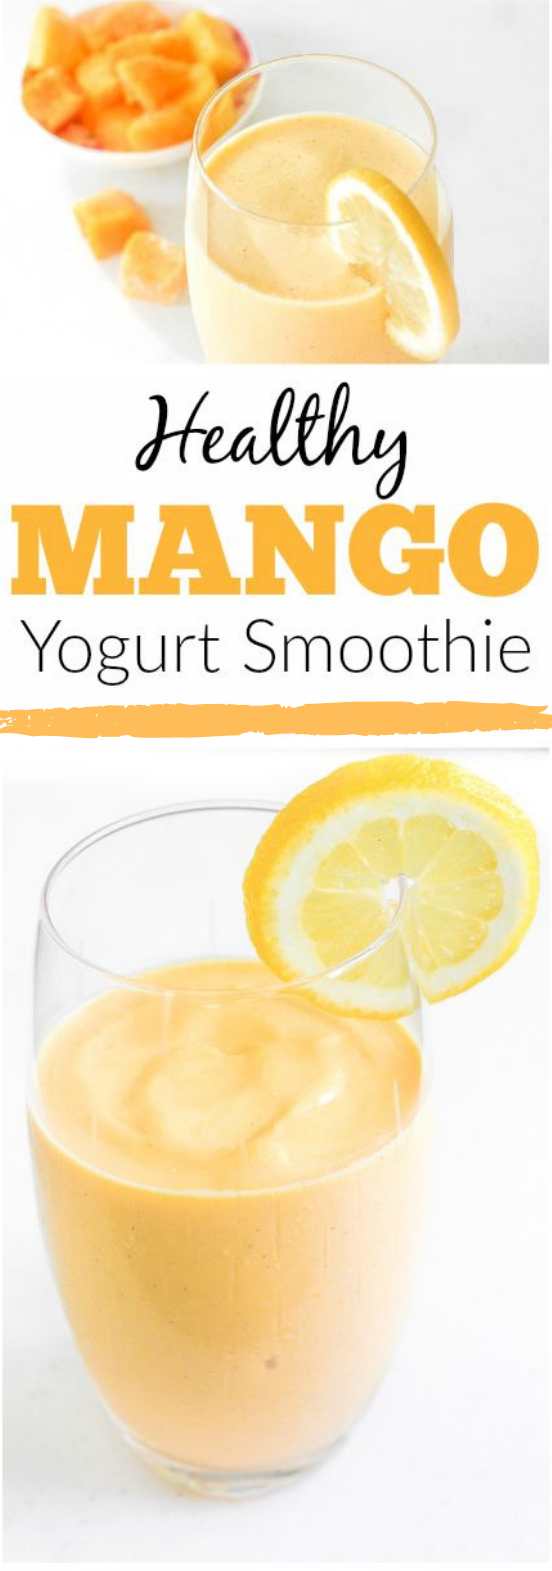 HEALTHY MANGO YOGURT SMOOTHIE #drink #smoothie